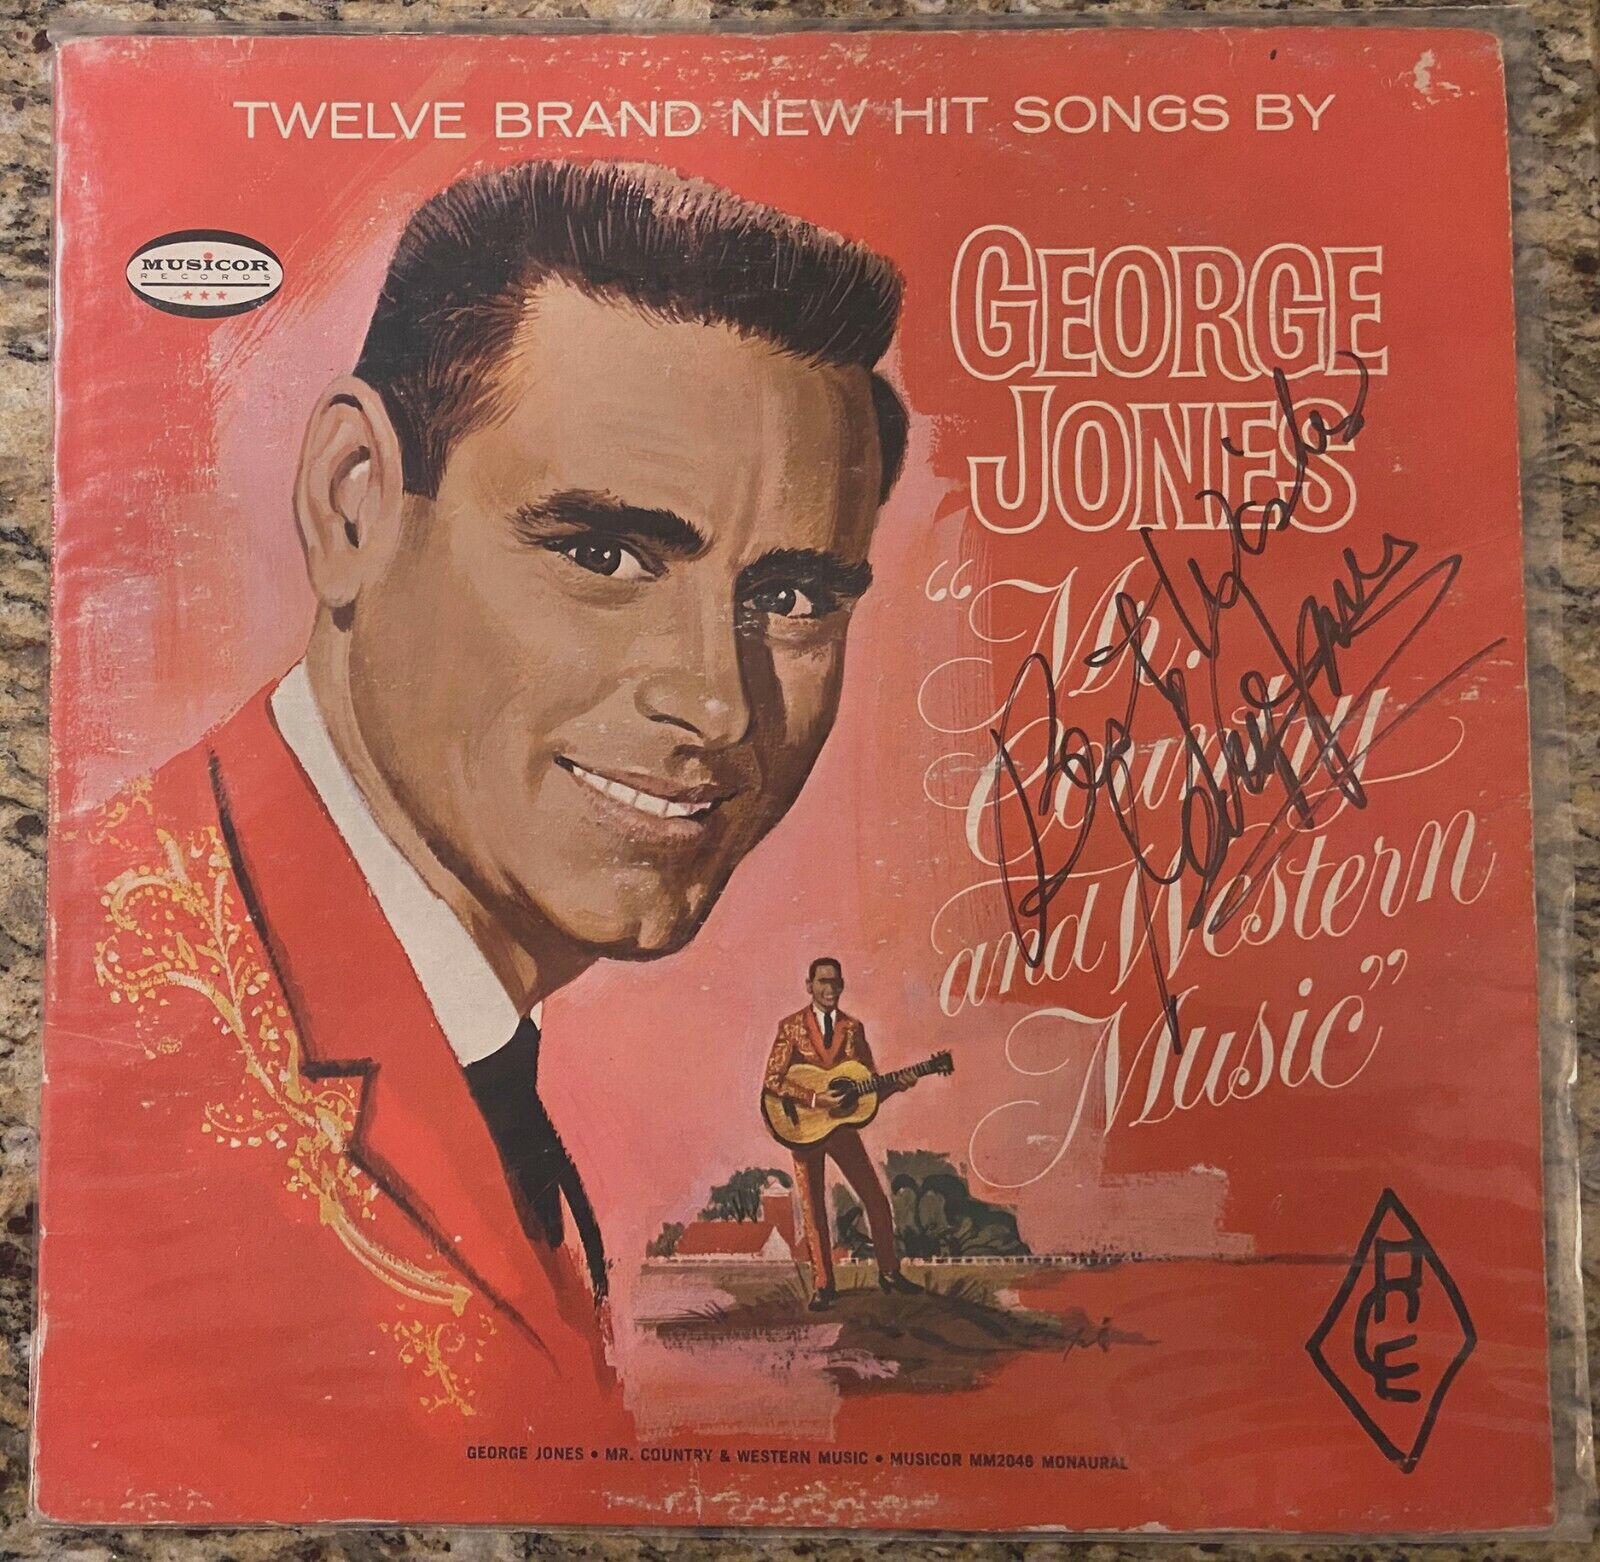 Vintage George Jones Signed Mr. Country and Western Music Album on Vinyl